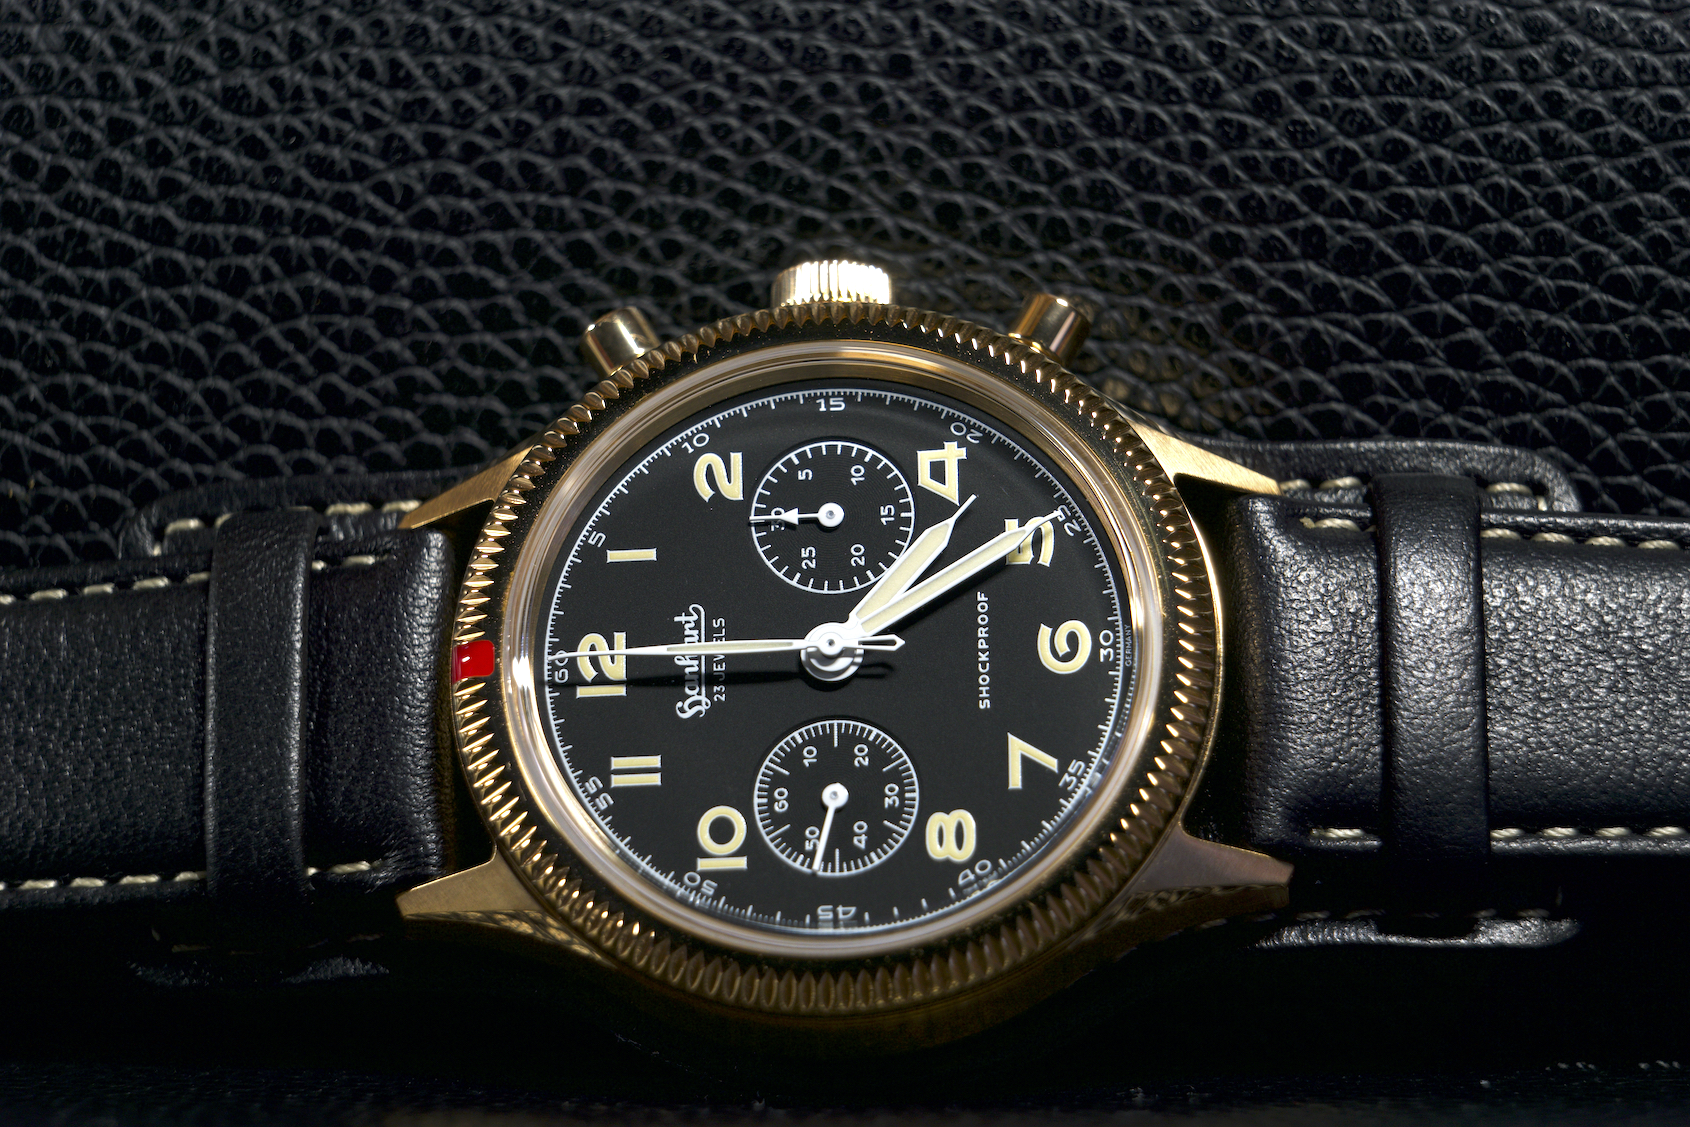 Why I bought the Hanhart x The Rake & Revolution Limited Edition Bronze 417 Chronograph